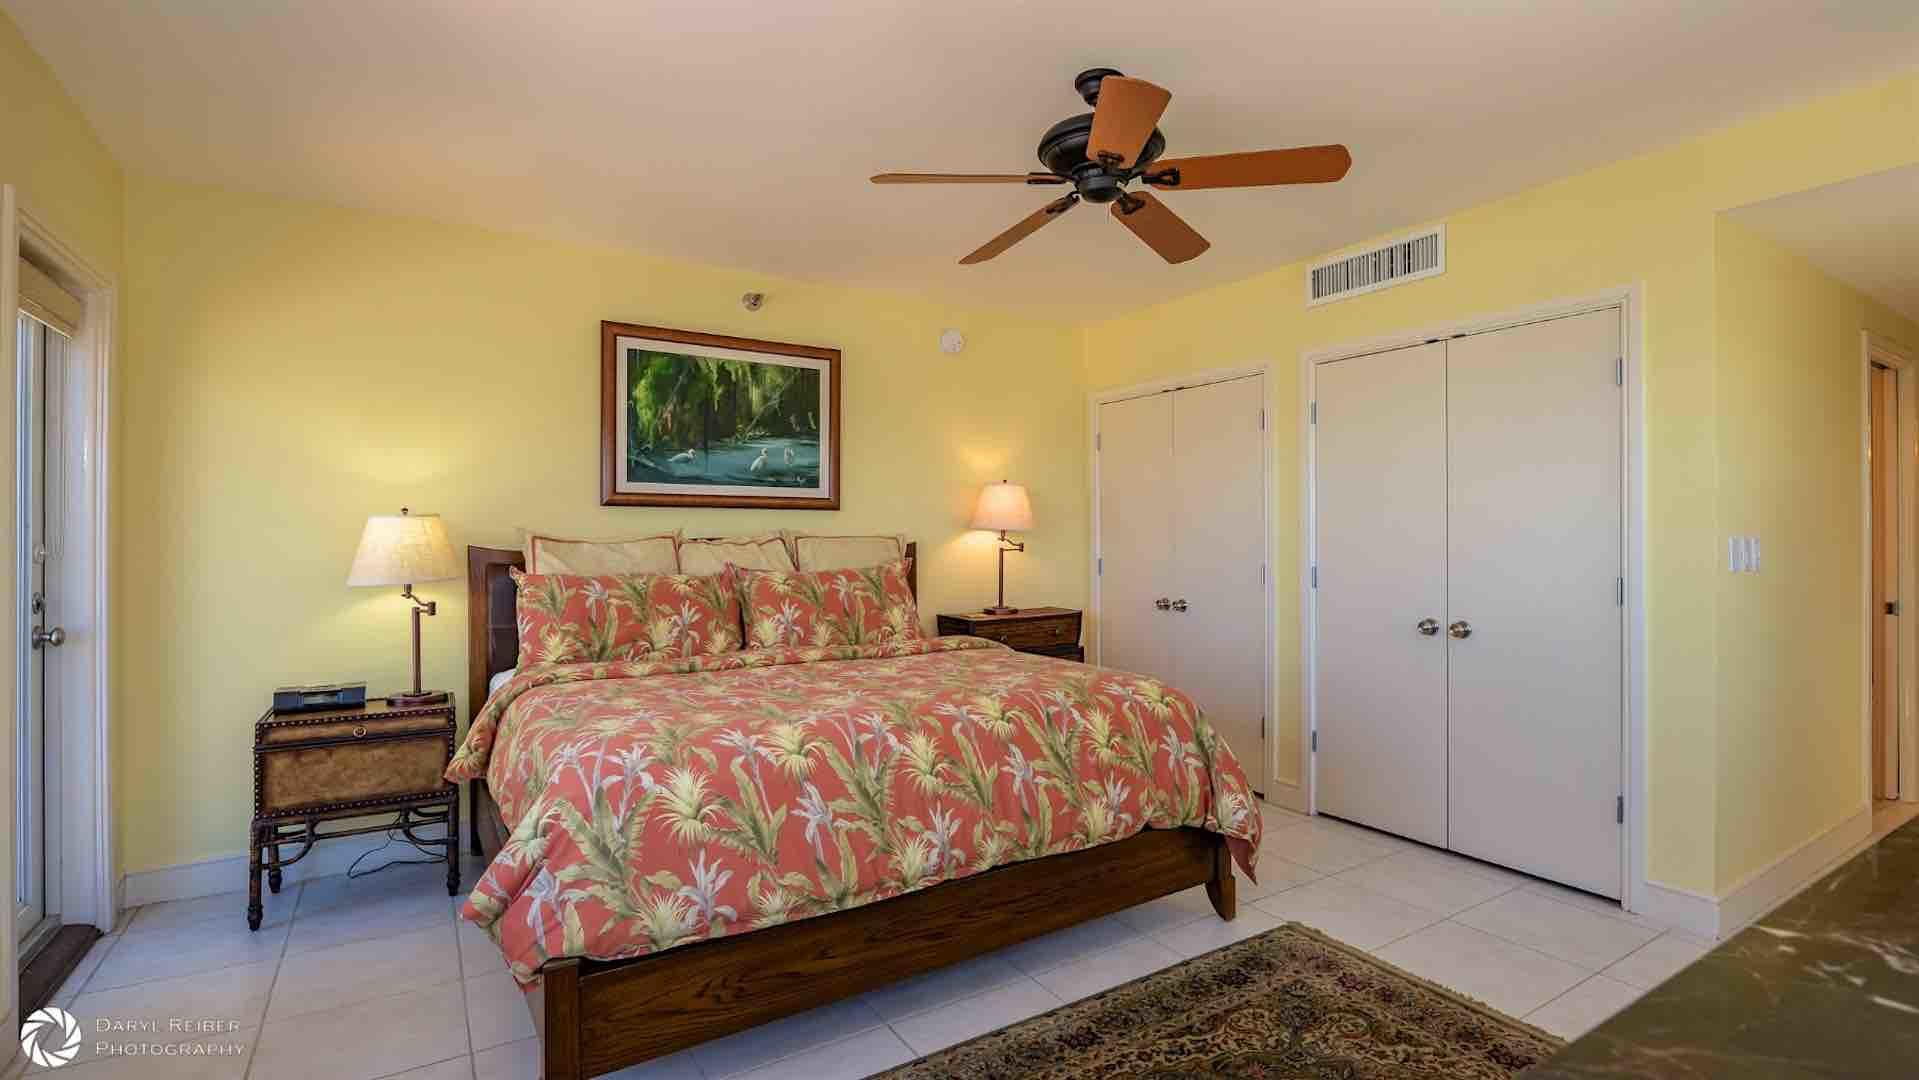 The spacious master bedroom has an overhead fan...